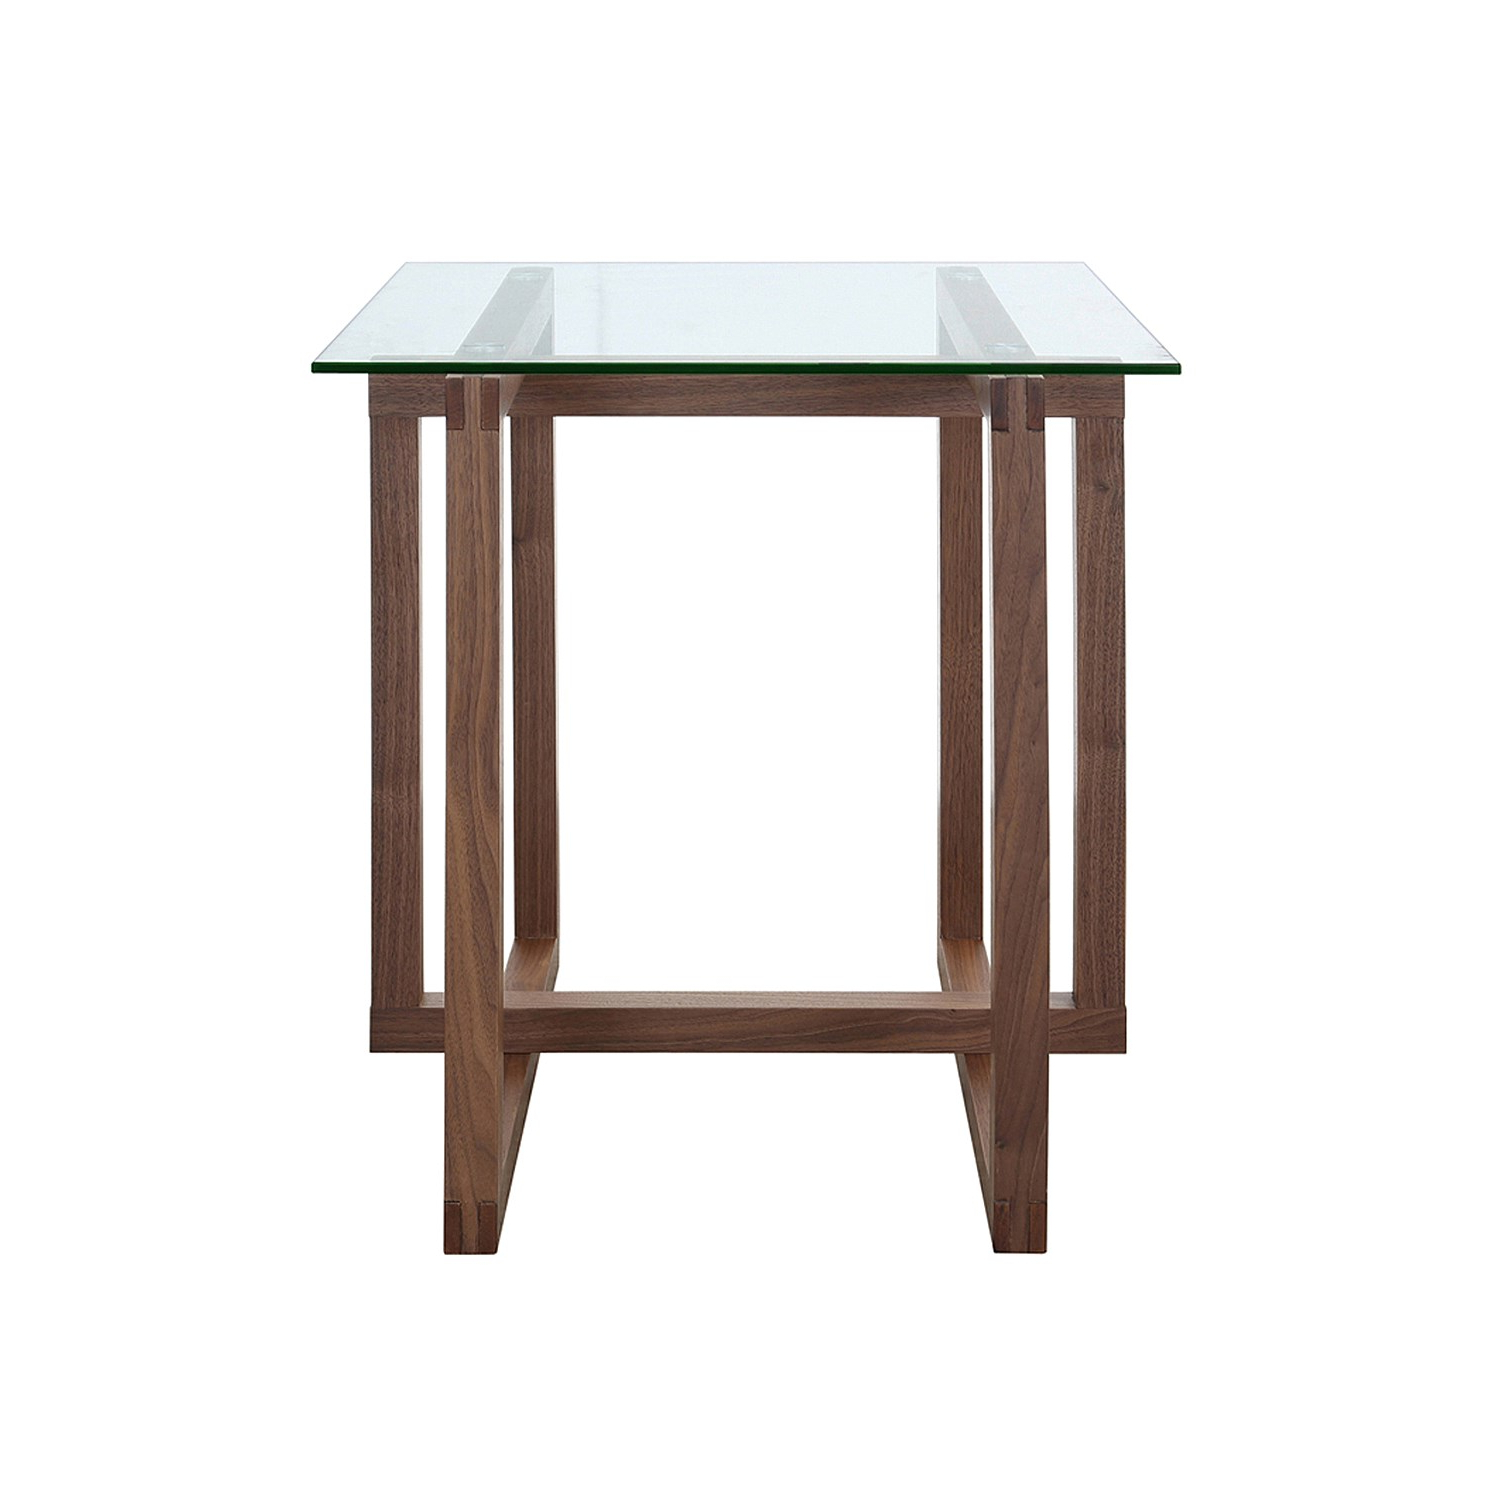 Living Room Furniture,view Range Online Now – Kyra Side Table 55X55Cm Throughout Kyra Console Tables (View 19 of 20)